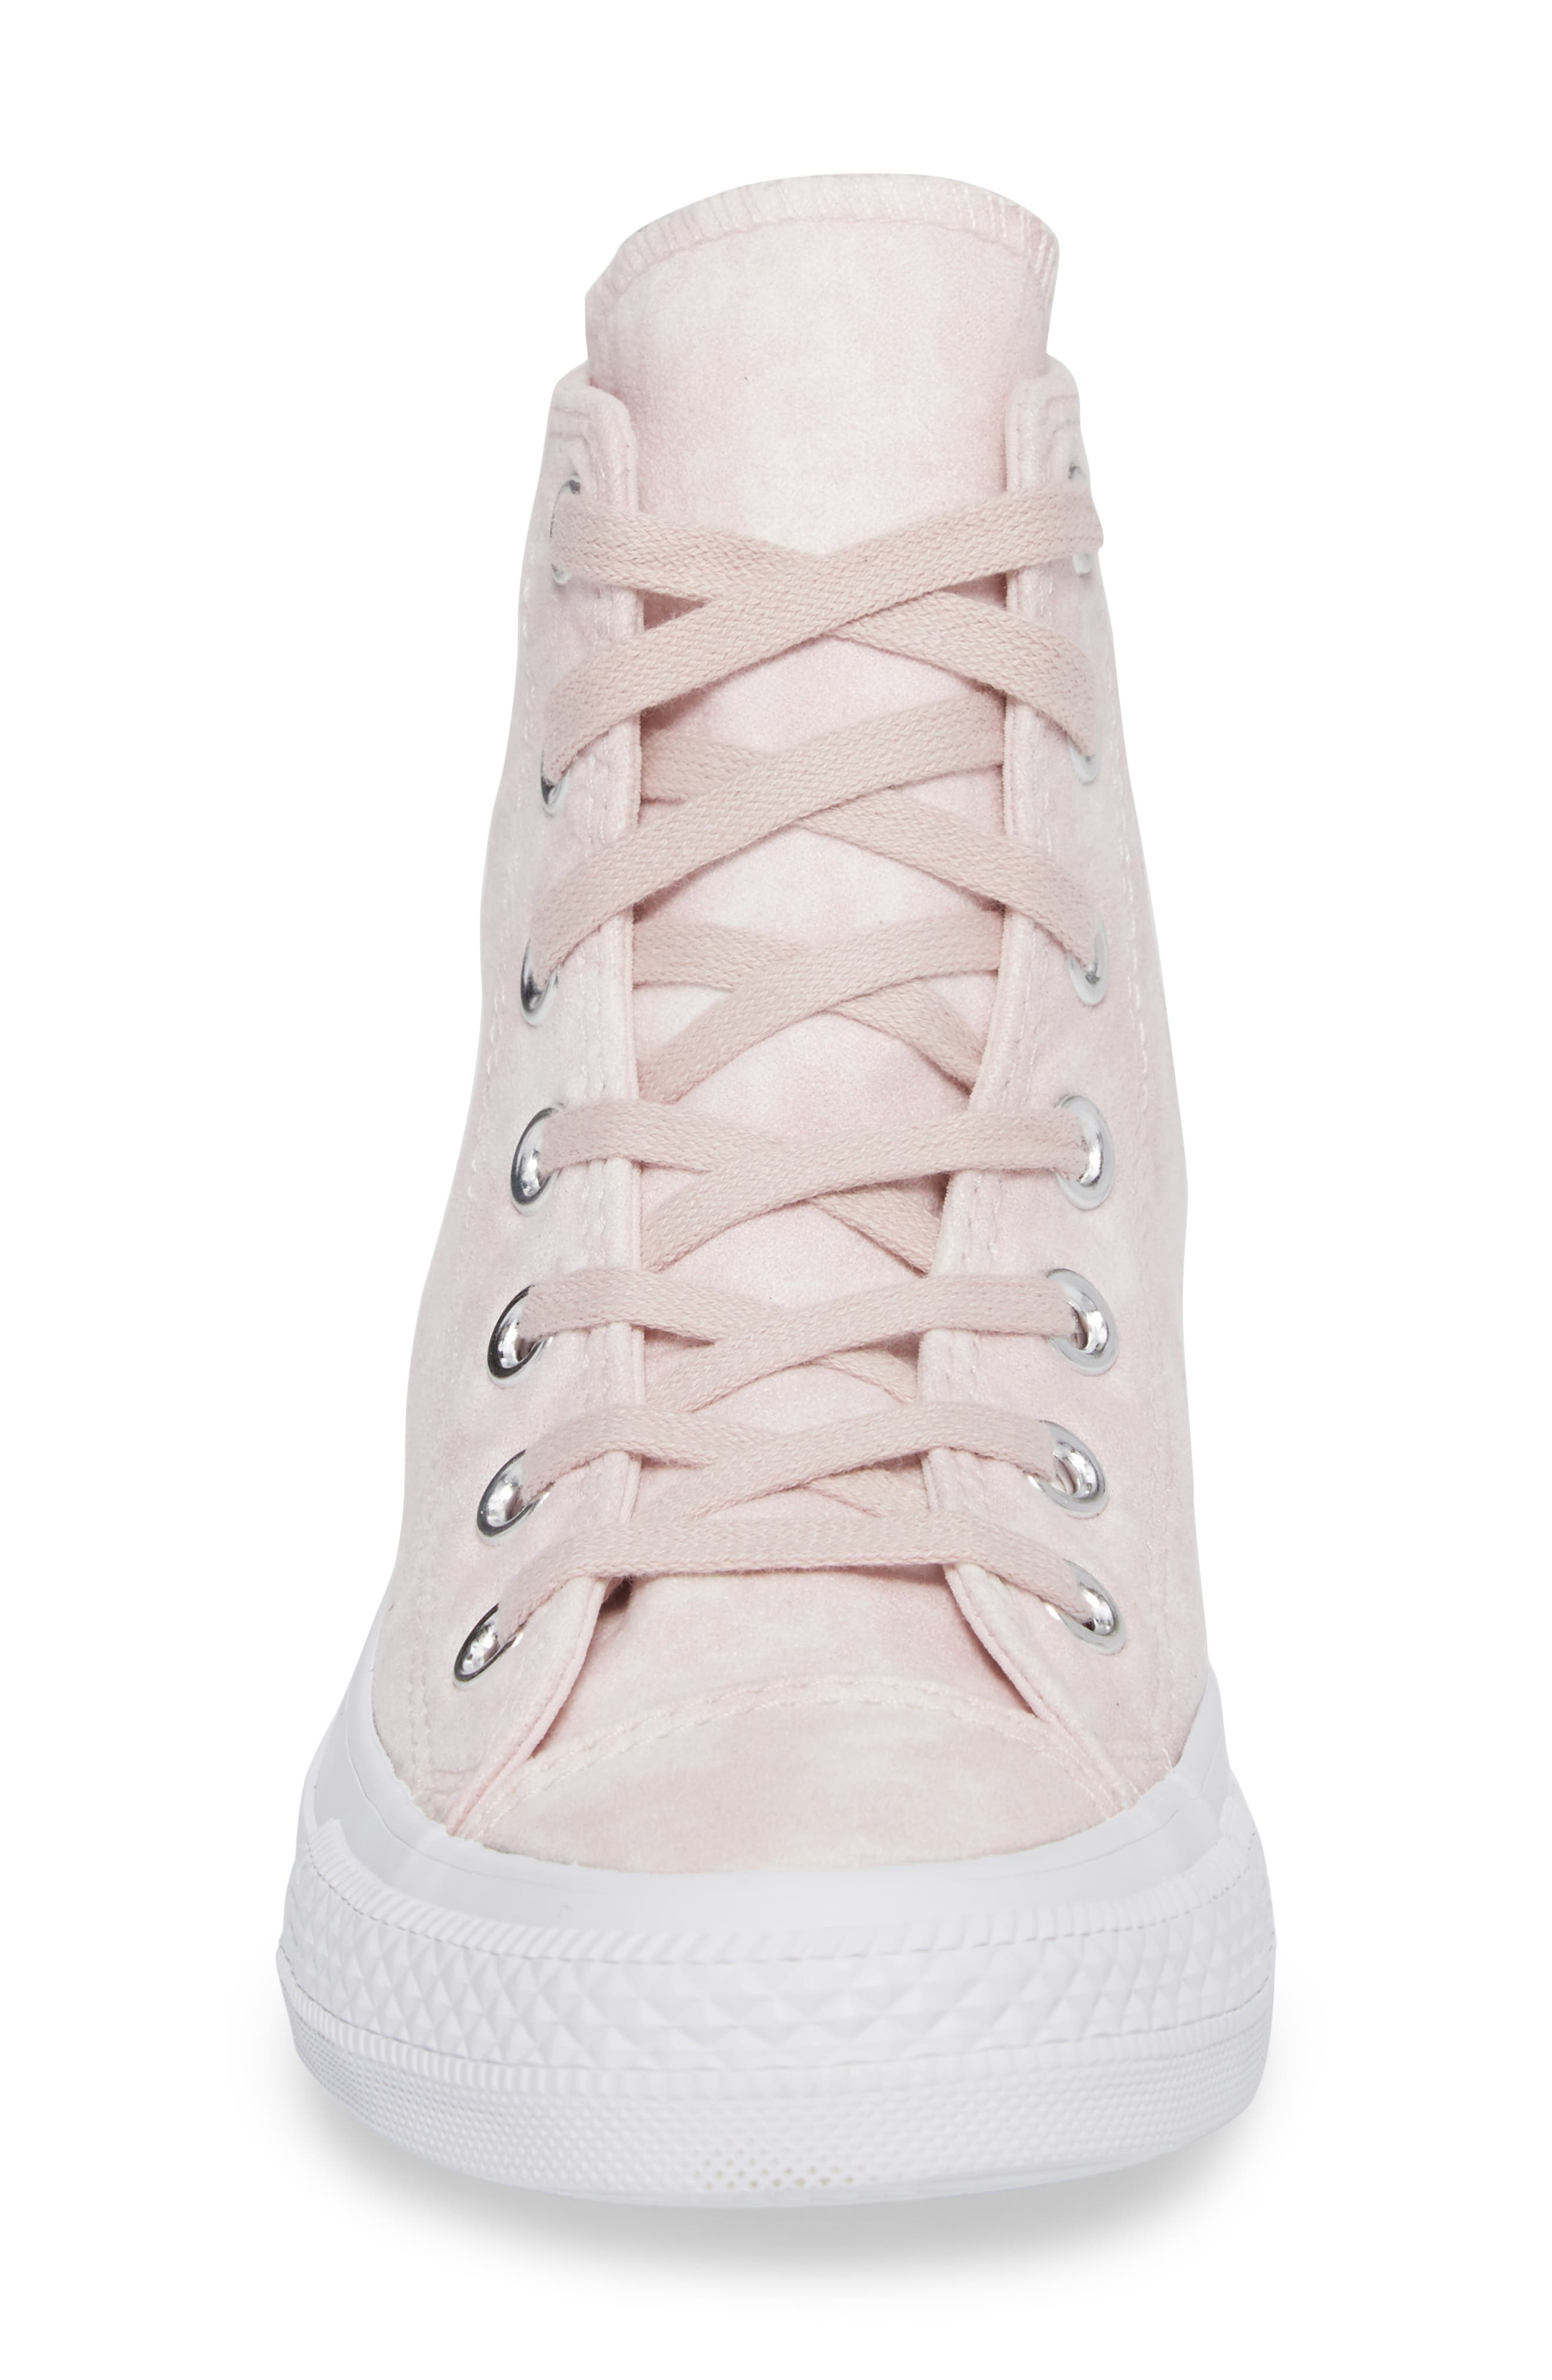 Chuck Taylor<sup>®</sup> All Star<sup>®</sup> Peached High Top Sneaker,                             Alternate thumbnail 4, color,                             653